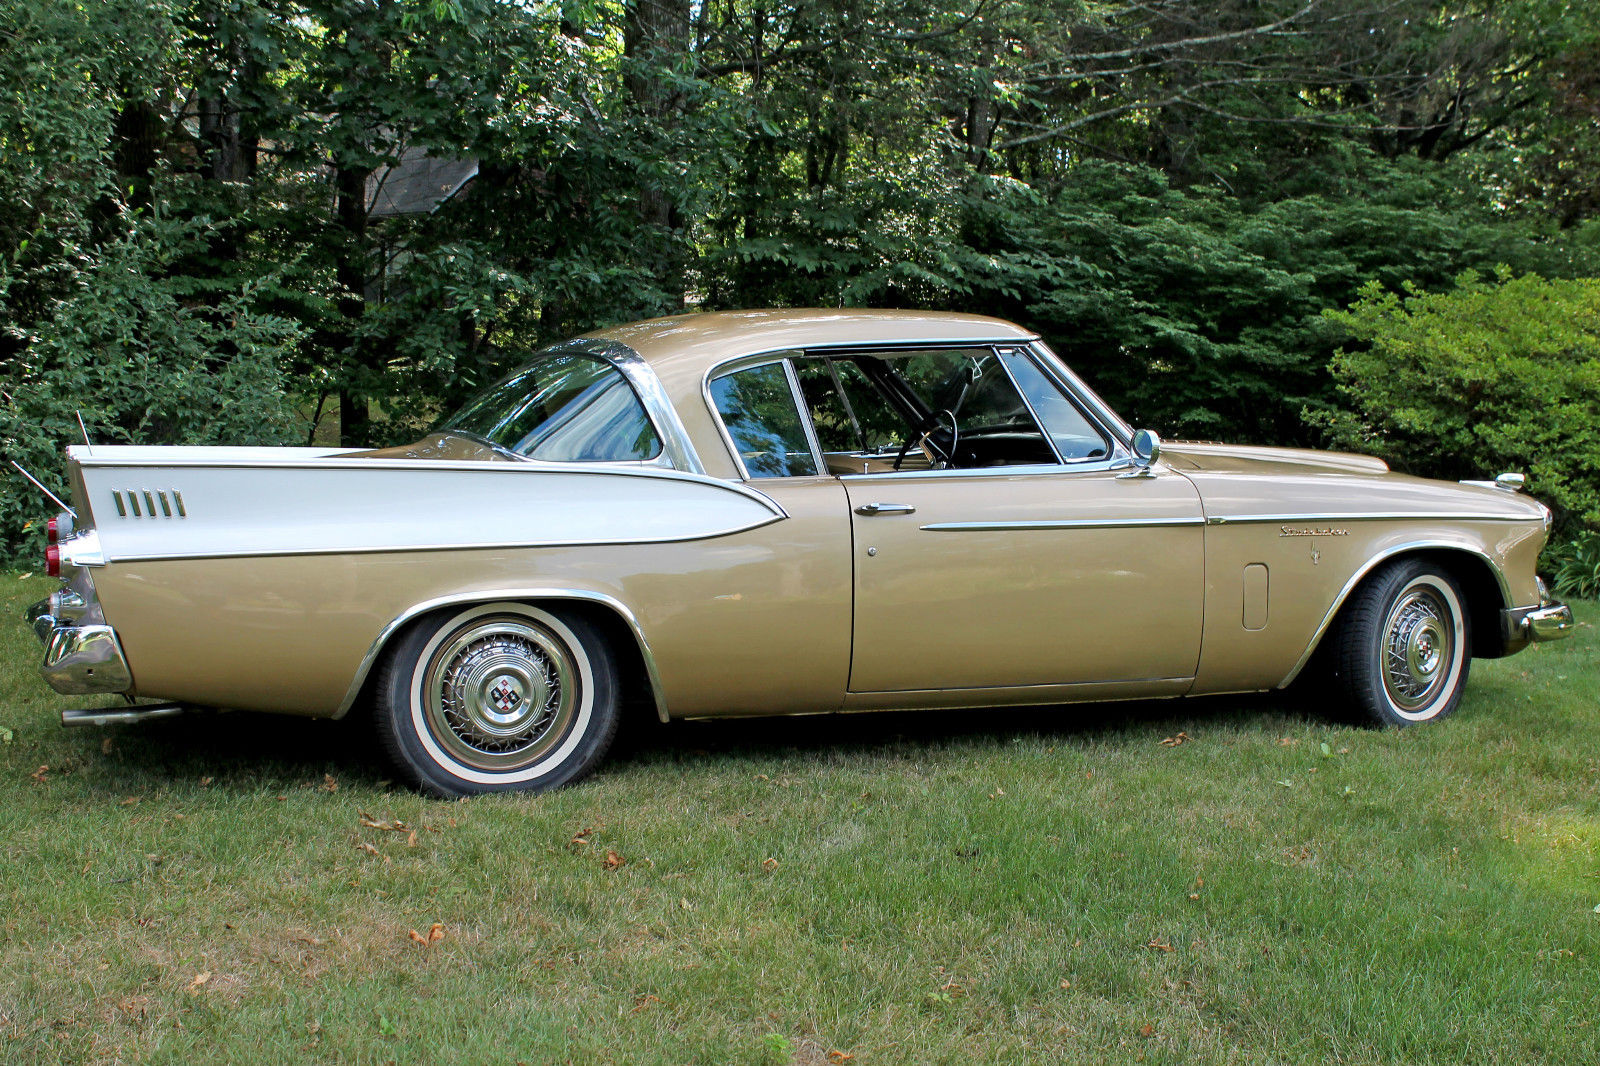 Studebaker's Golden Hawk stands out as one of the best looking American cars of the fifties.